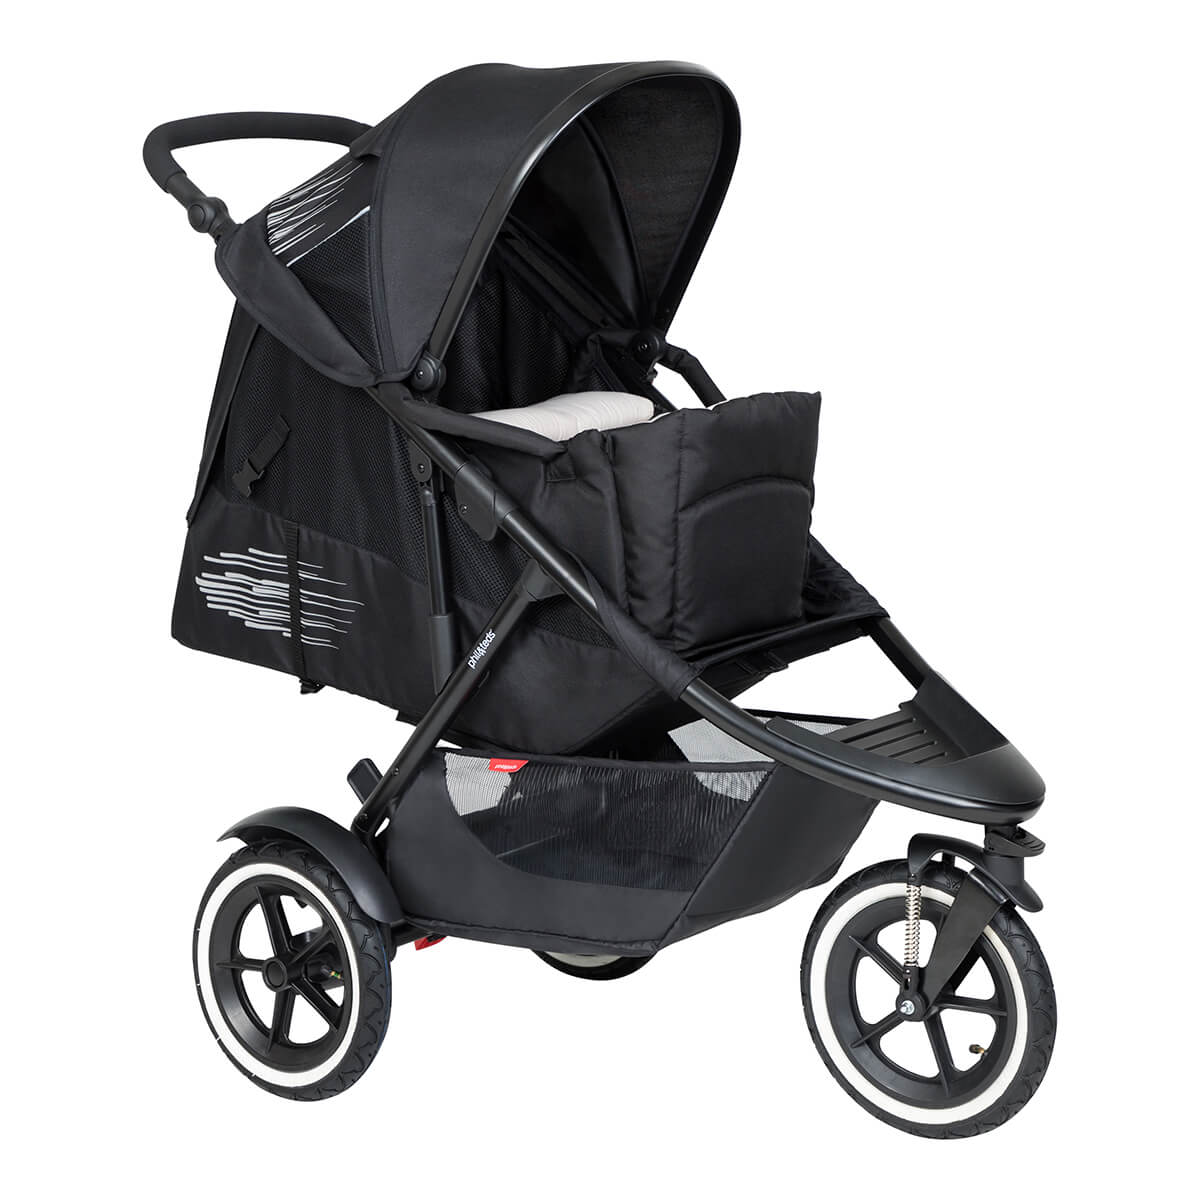 https://cdn.accentuate.io/4513462255712/19440099360952/philteds-sport-buggy-with-cocoon-full-recline-v1626486497903.jpg?1200x1200